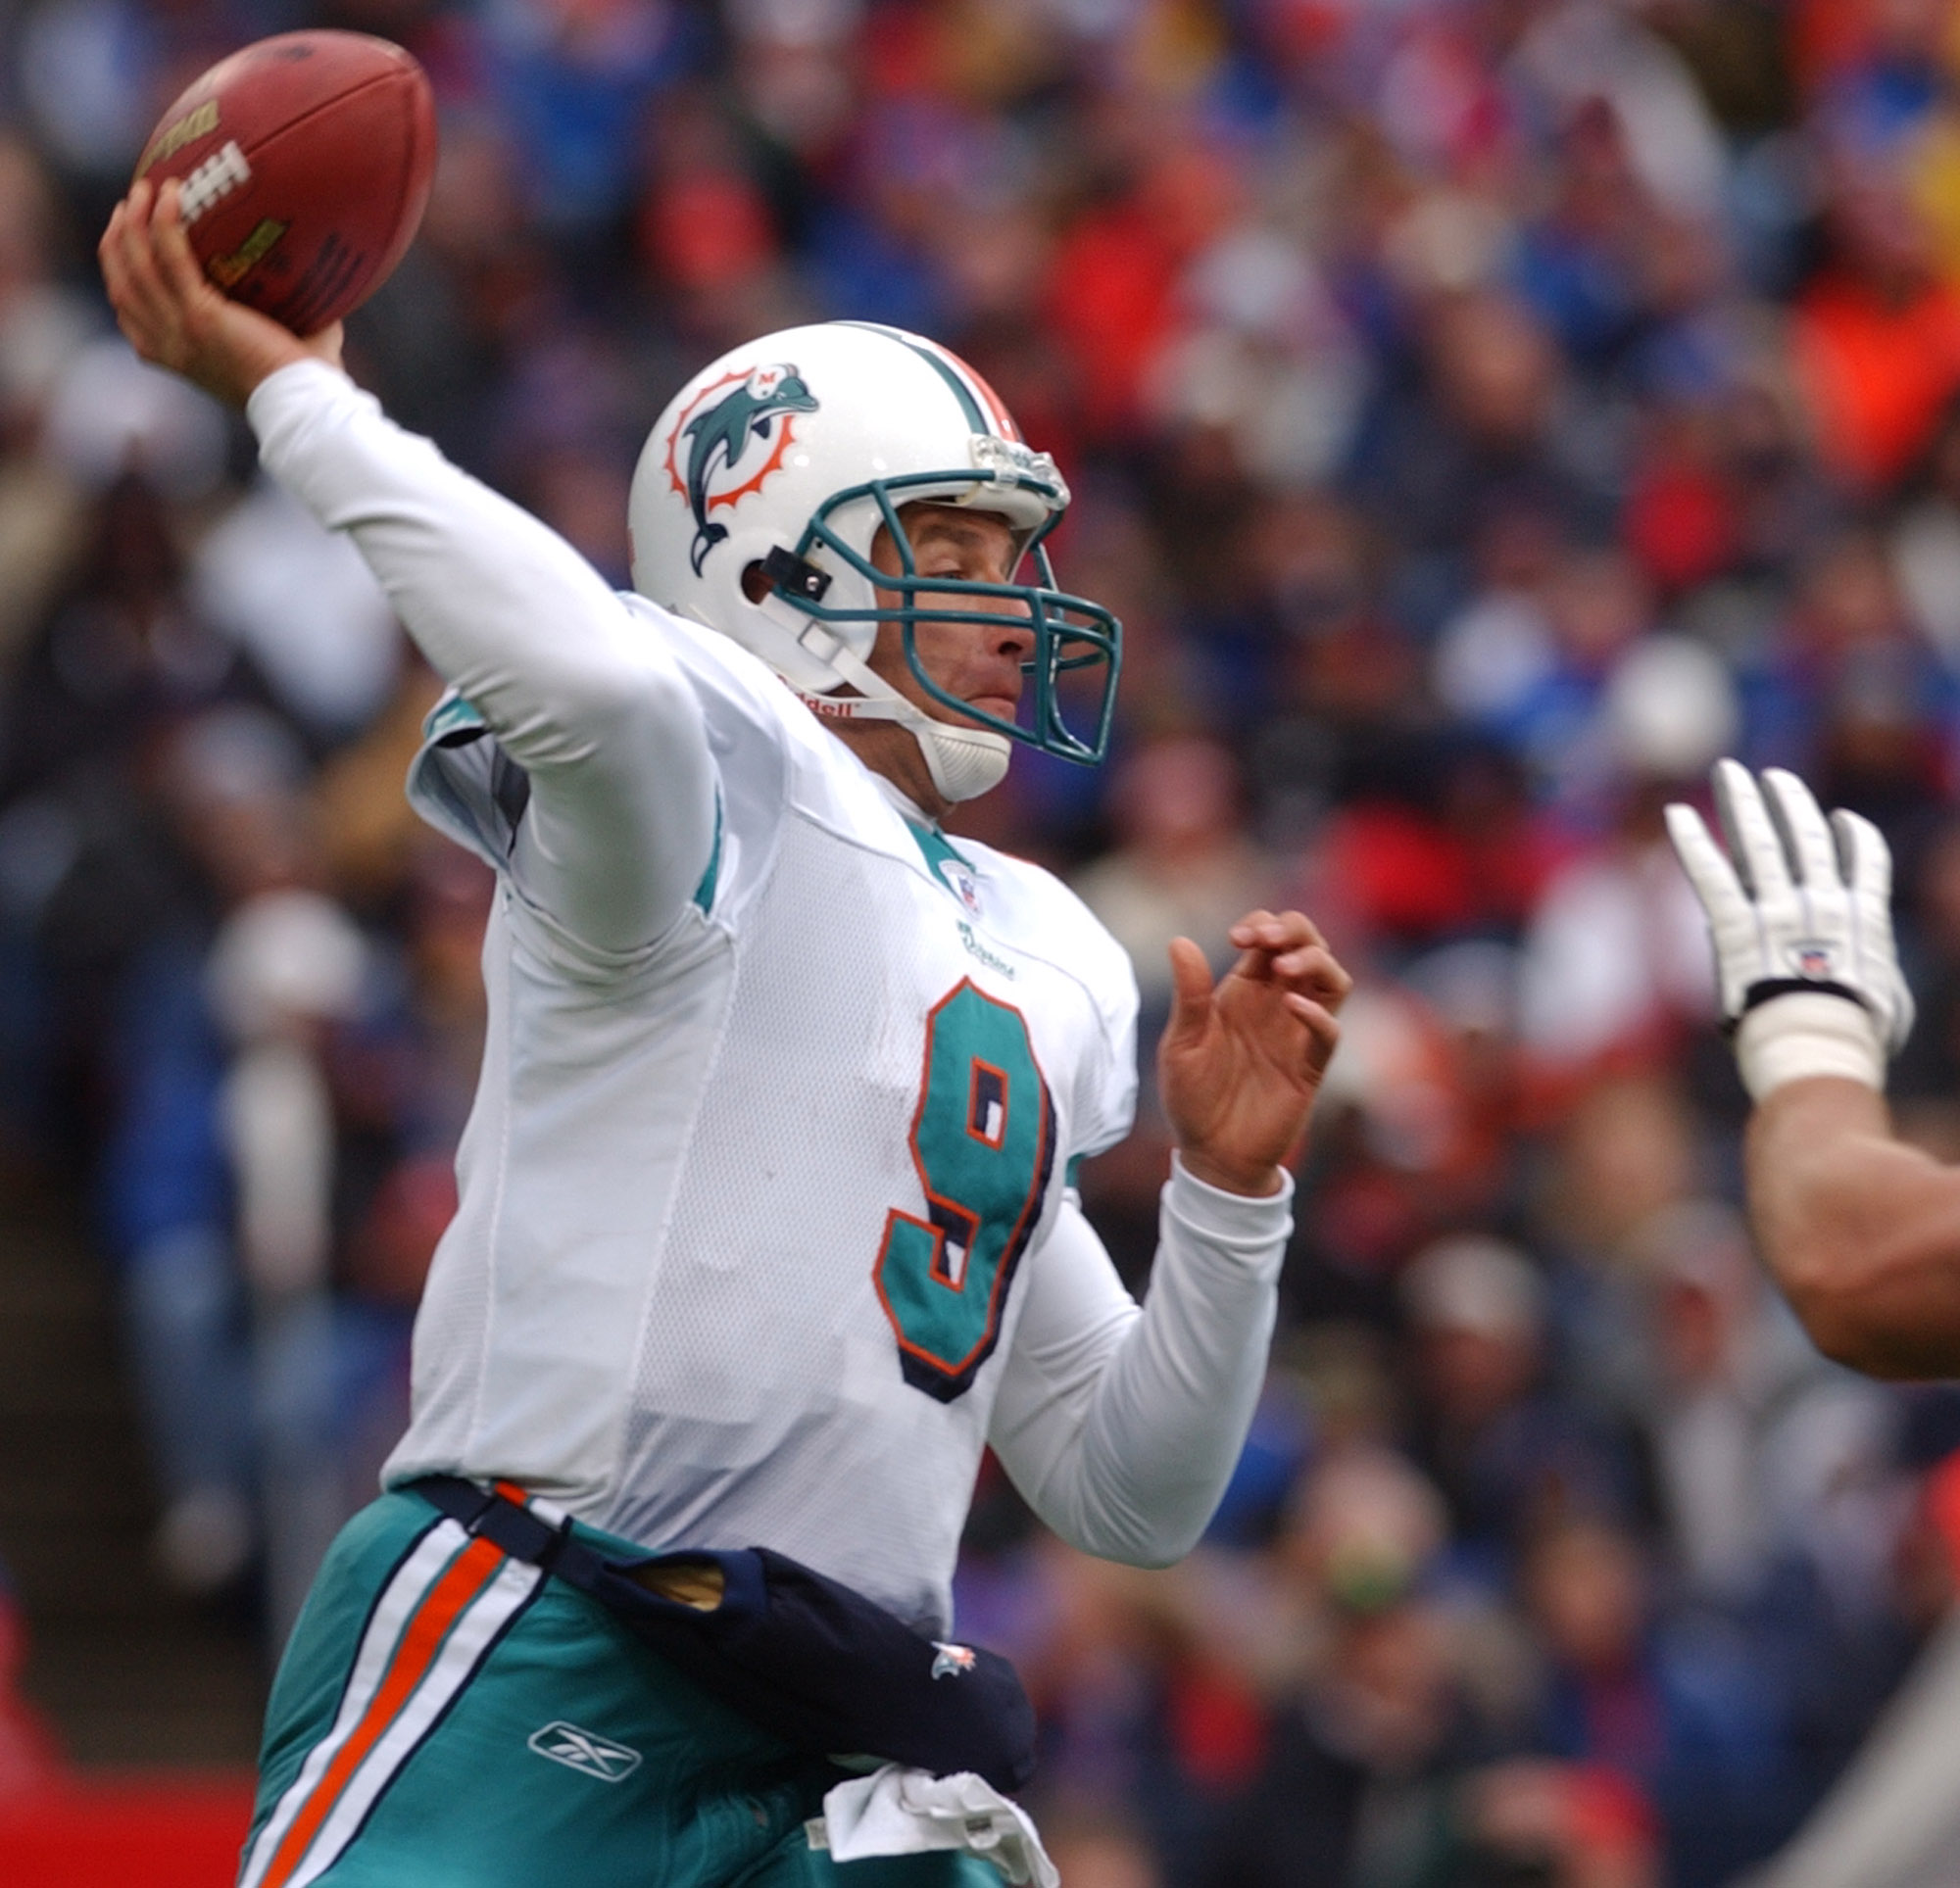 FILE - In this Oct. 17, 2004, file photo, Miami Dolphins quarterback Jay Fiedler passes during the second half against the Buffalo Bills in Orchard Park, N.Y. Dan Marino, perhaps the game's greatest pure passer, left Miami in 1999. In stepped Fiedler who